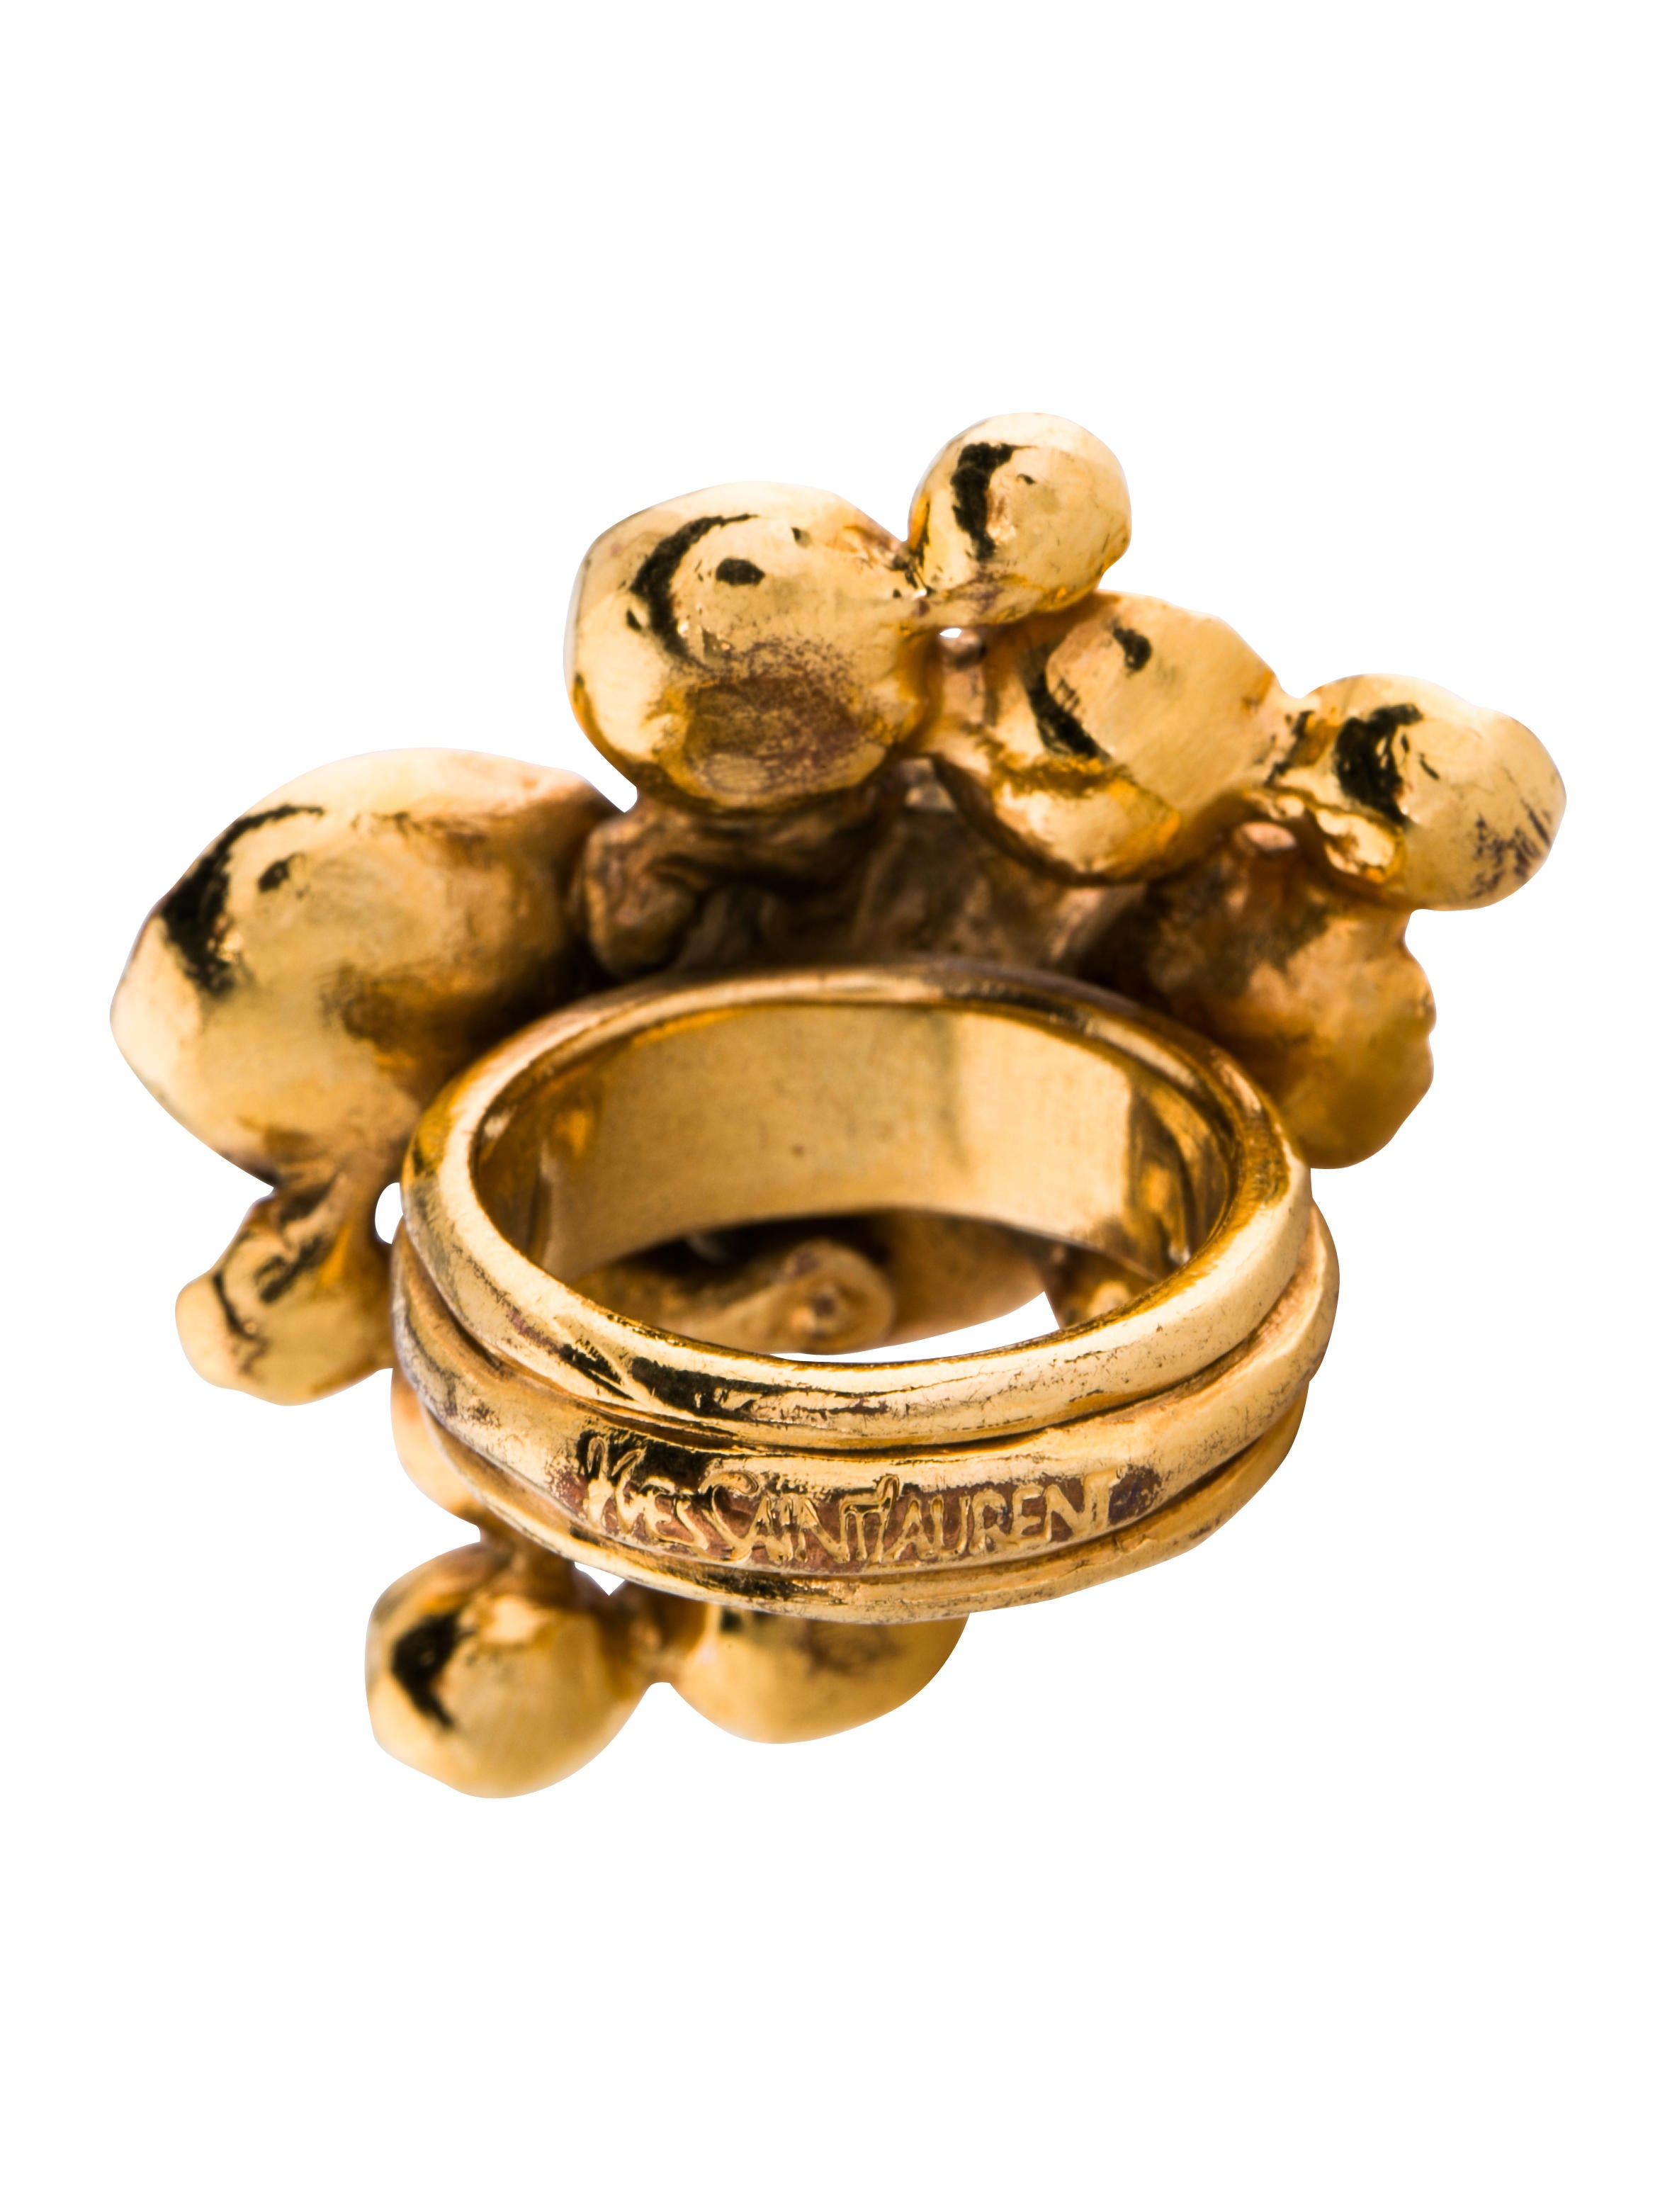 laurent flower rings the arty products realreal enlarged jewelry saint ring yves cocktail engagement